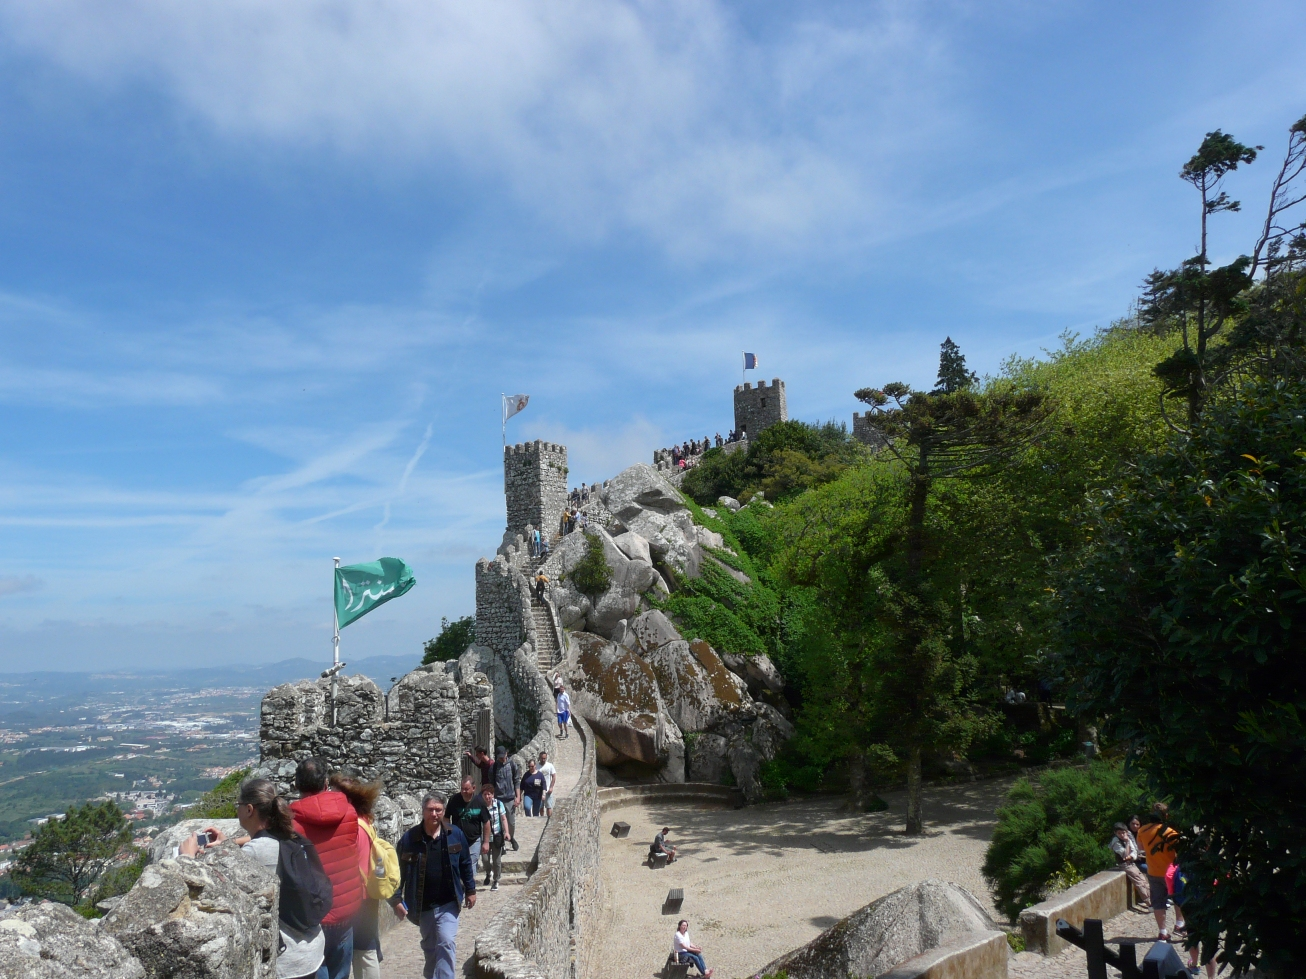 Picture 9, Castelo dos Mouros, Sintra, Portugal